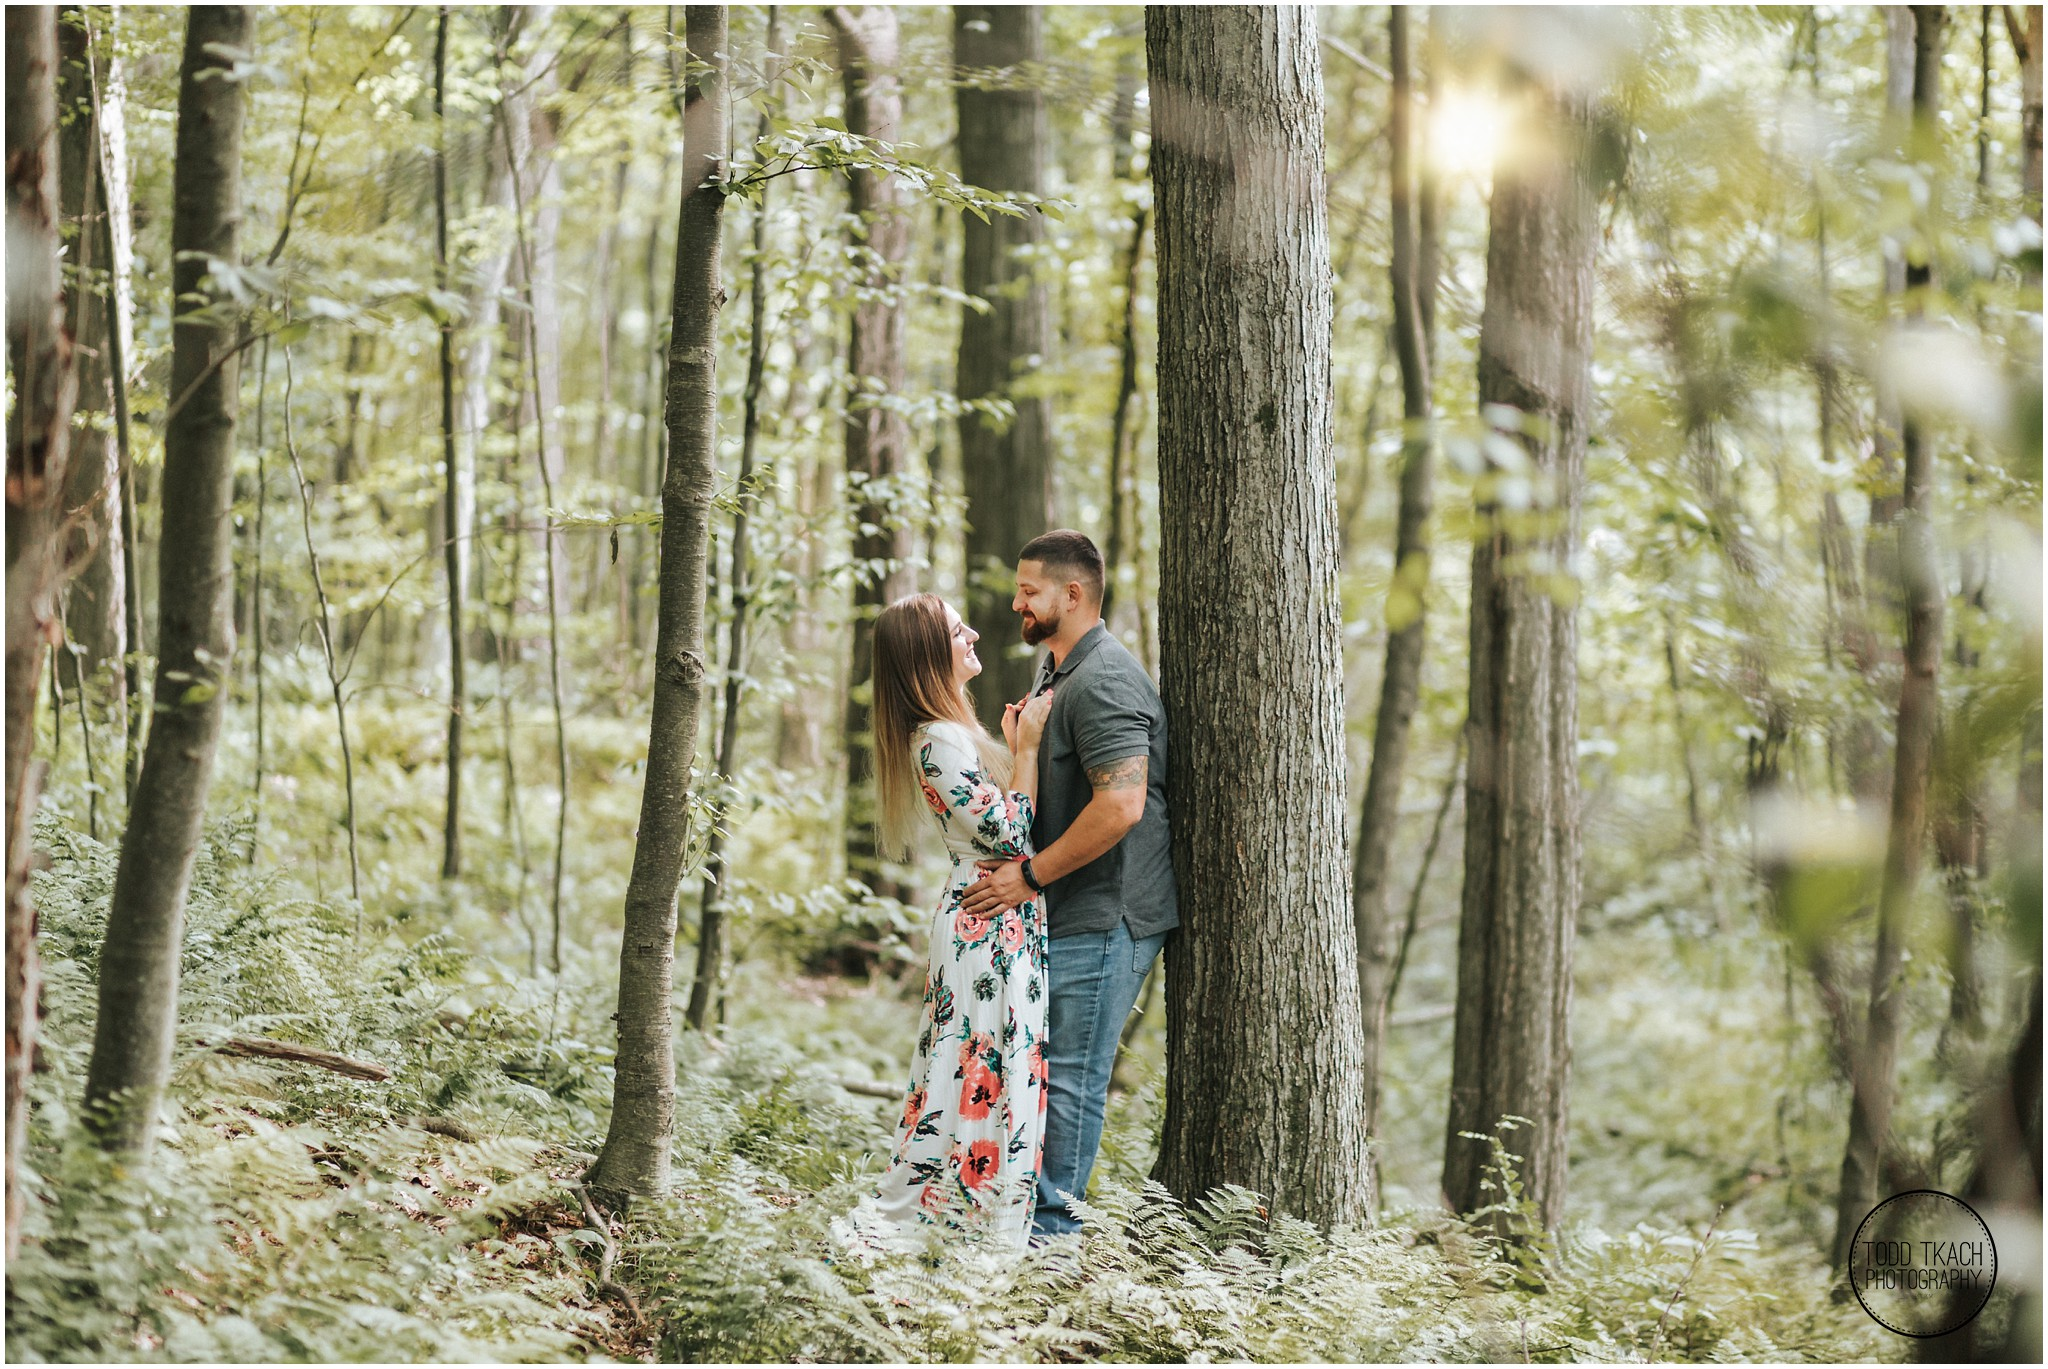 Kim & Brandon Engagement - Sunlight Forest